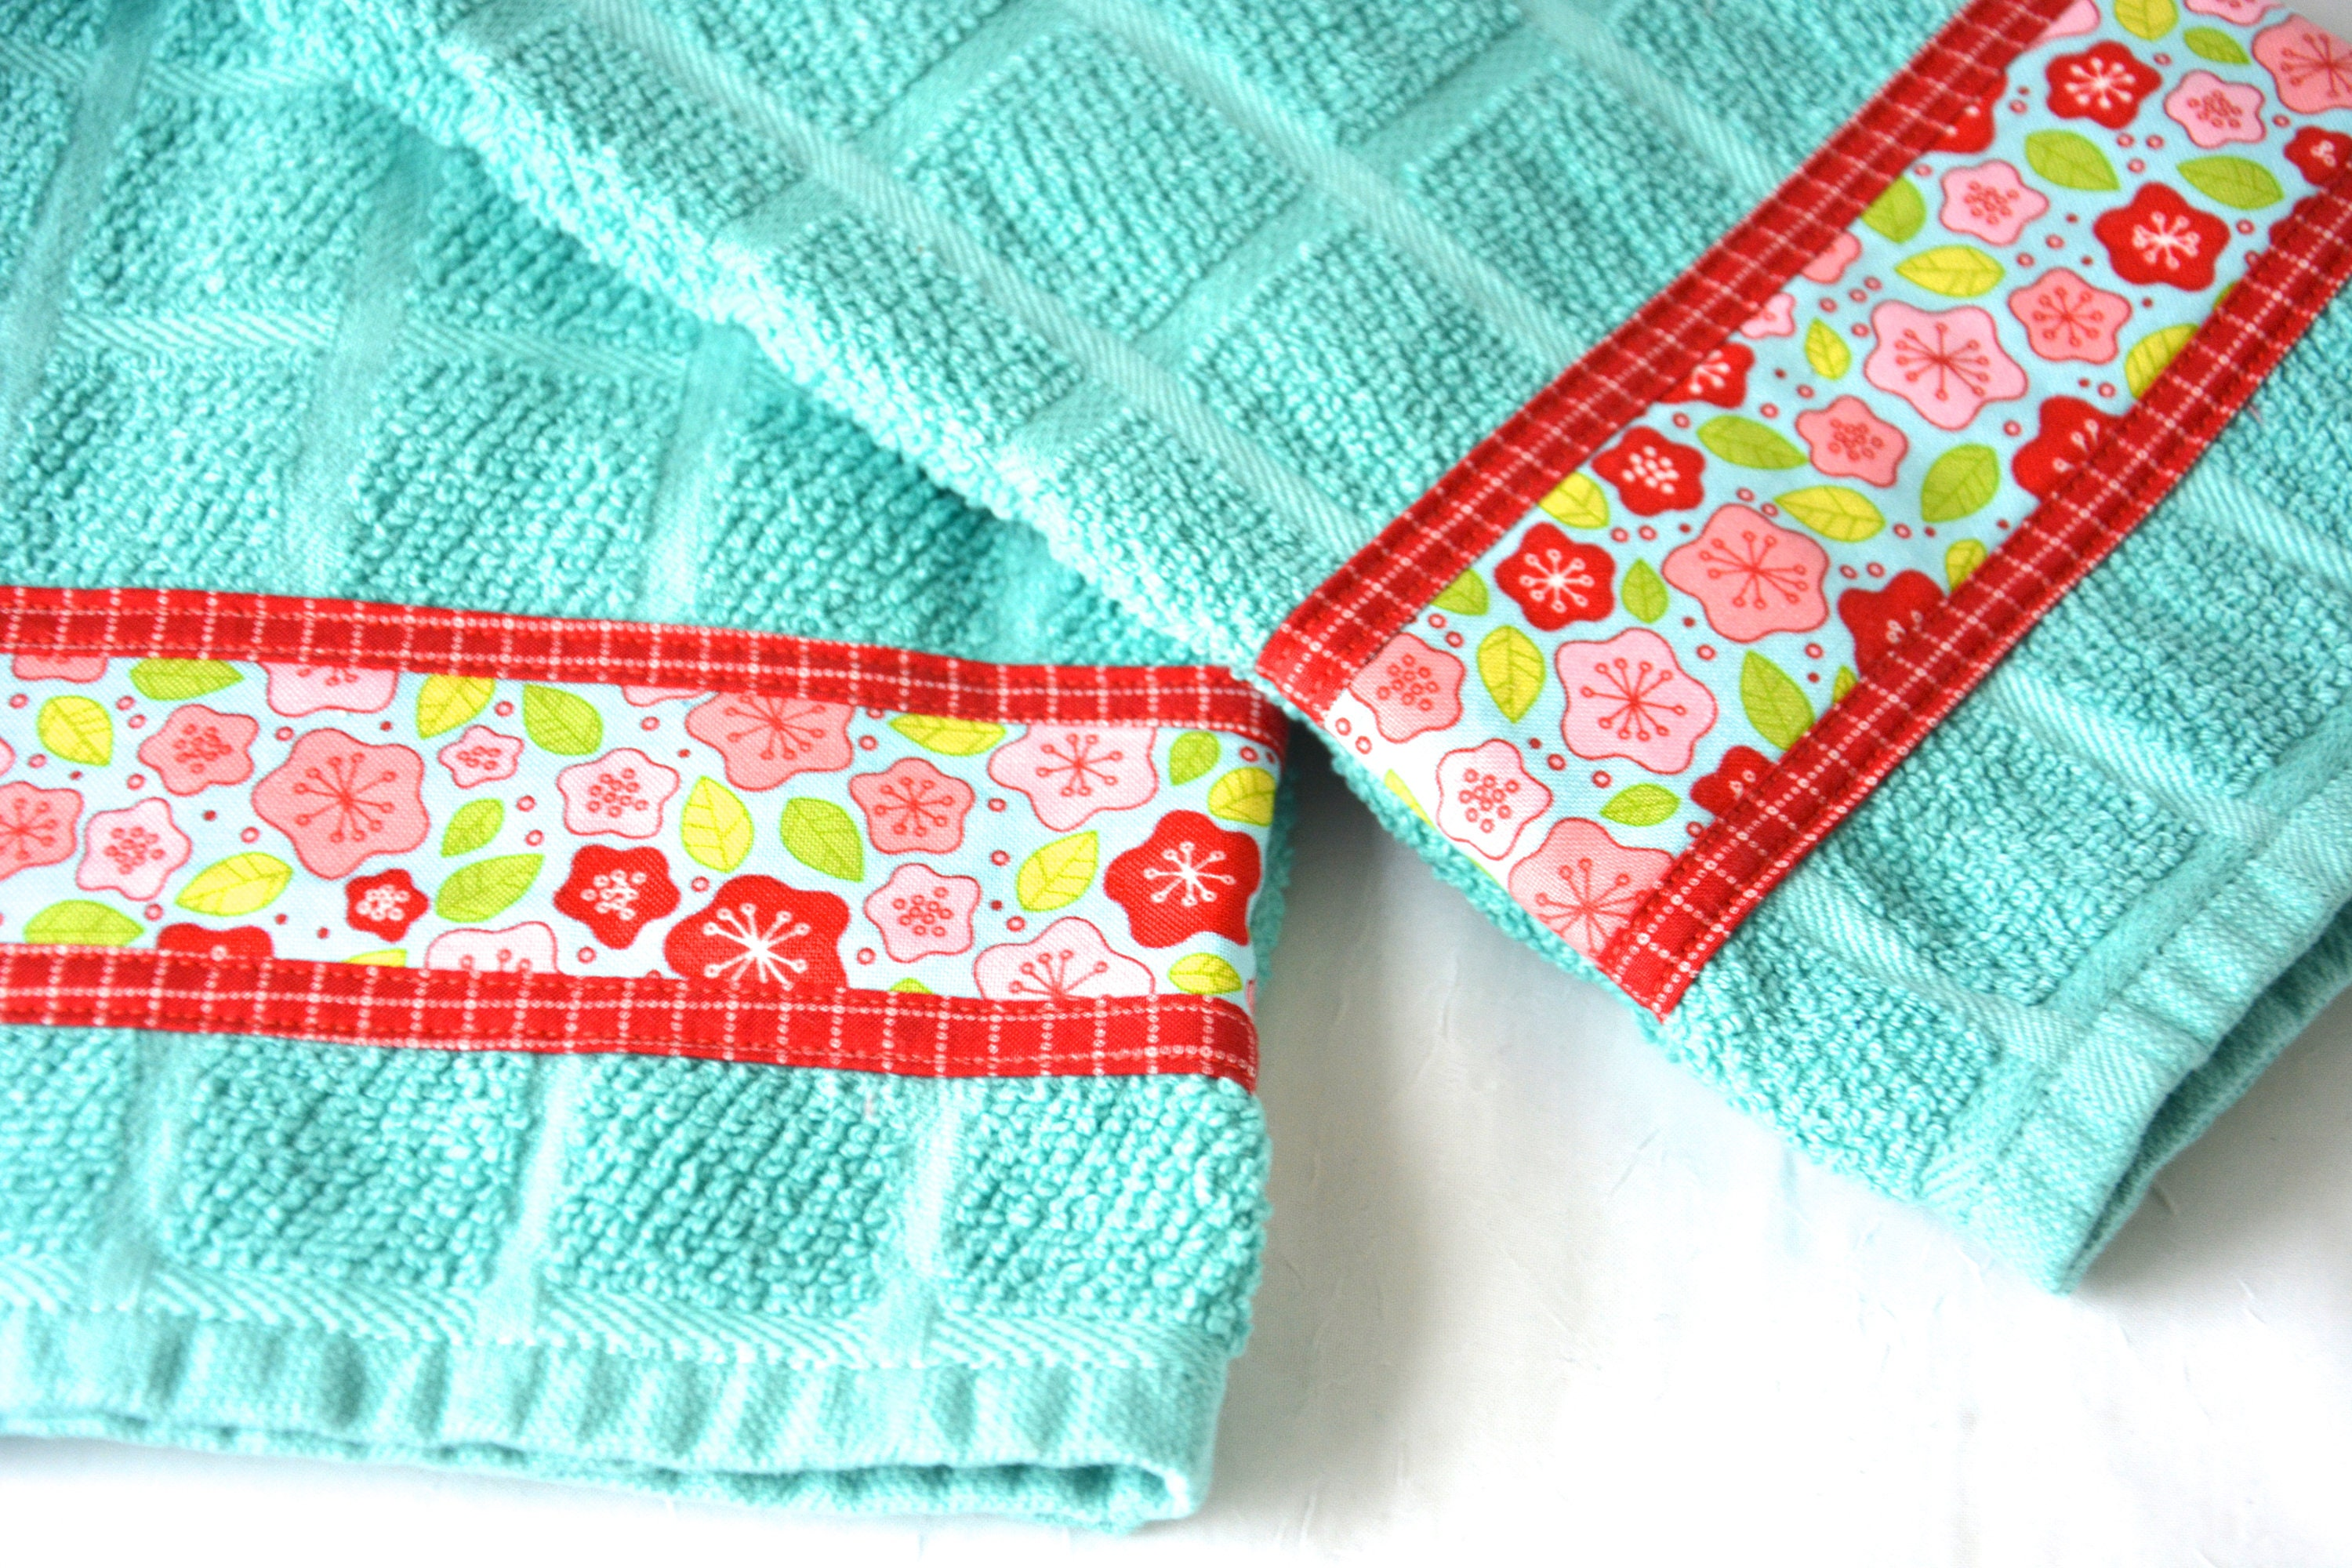 Turquoise Hand Towel, Red Home Decor, 2 Hand Decorated ...